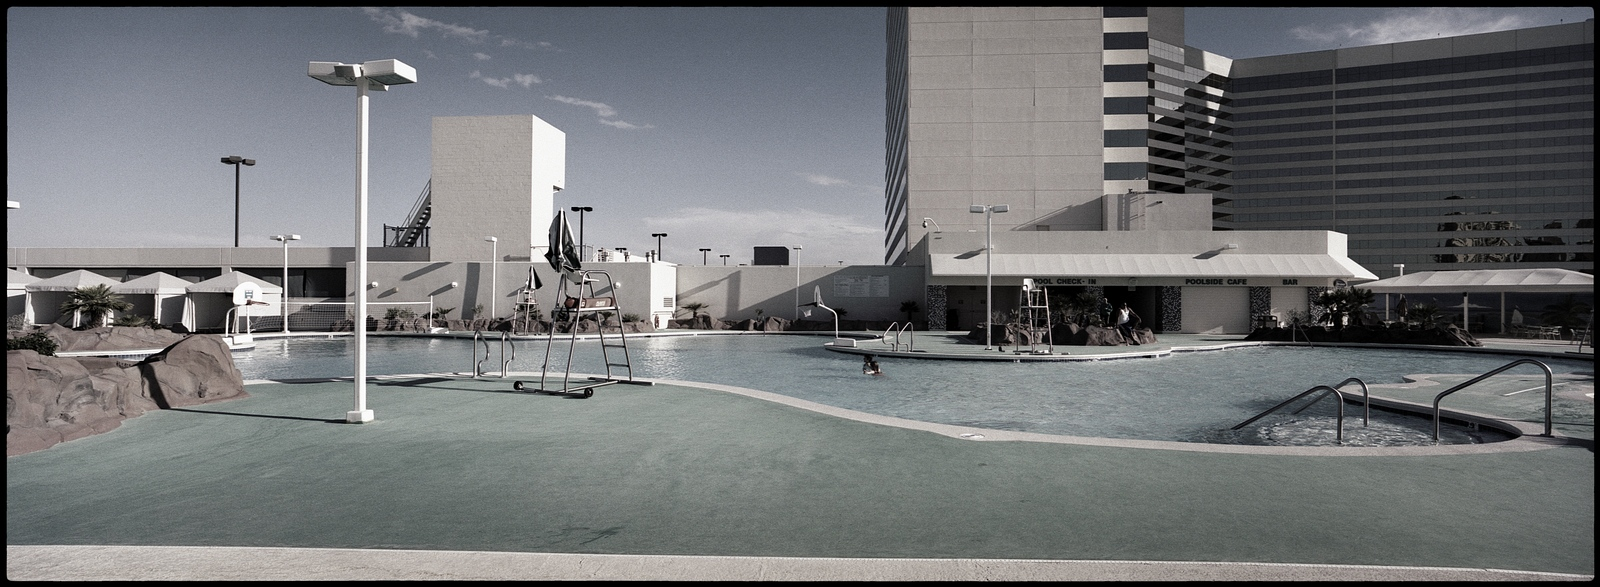 The Swiming Pool, Stratosphere Hôtel, Las Vegas, NV, USA.All pictures are © Cyril Fakiri - No use without permission.